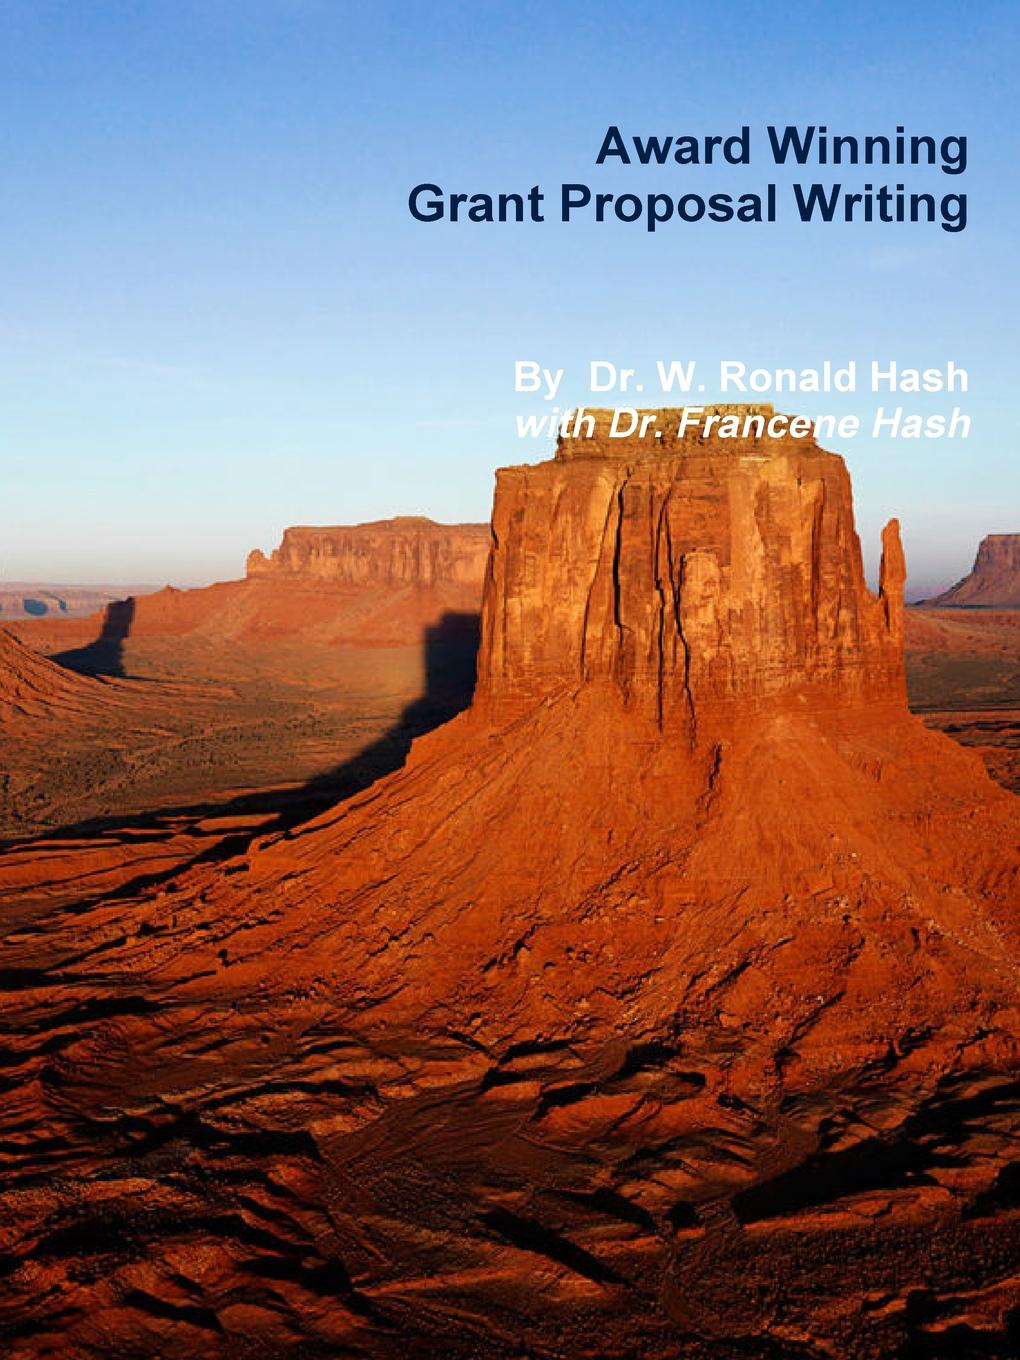 Francene Hash Award Winning Grant Proposal Writing cheryl rickman the digital business start up workbook the ultimate step by step guide to succeeding online from start up to exit